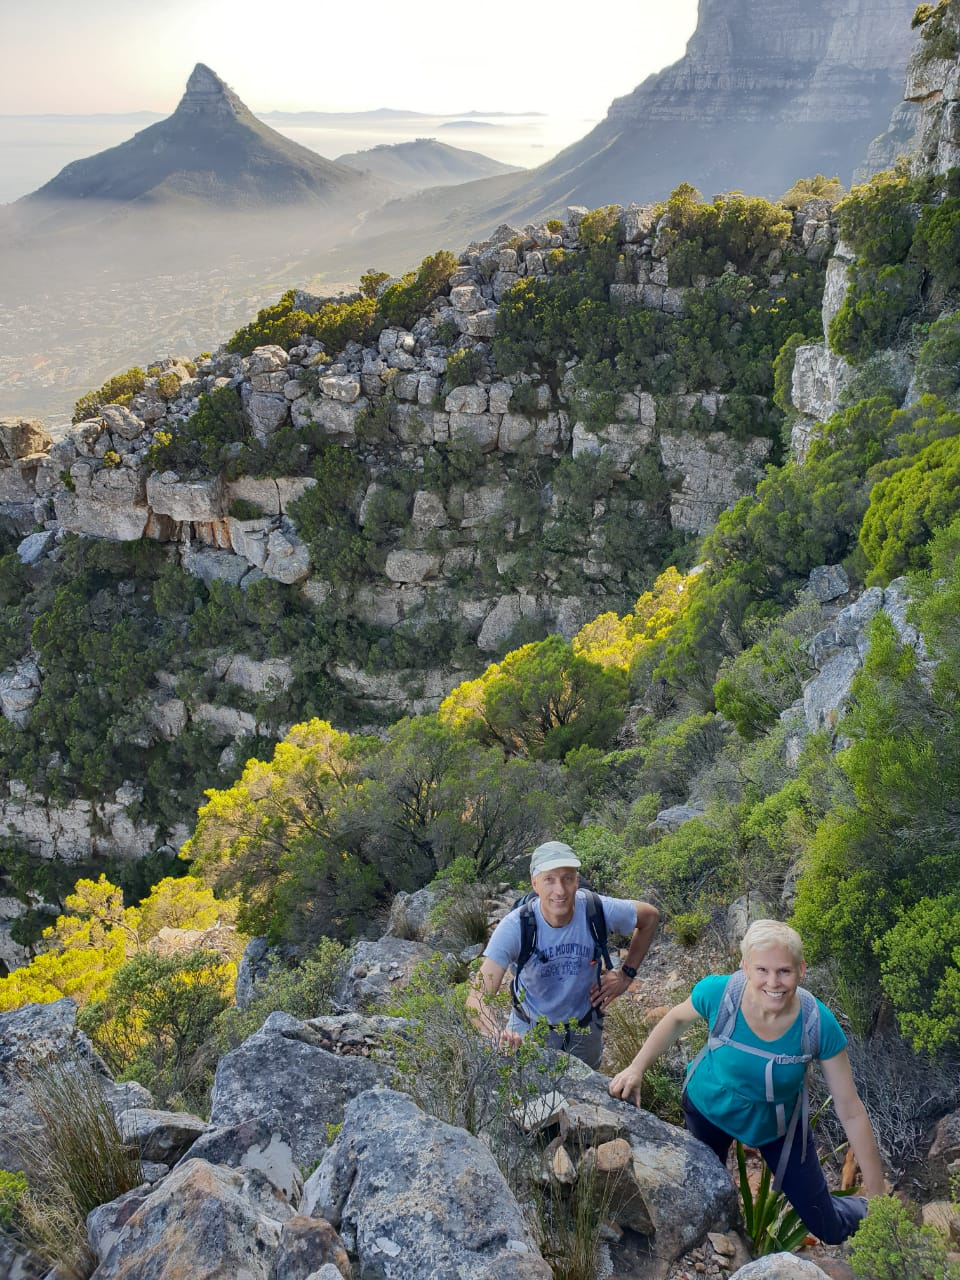 Magic morning views over Lion's Head, on the Wood Buttress